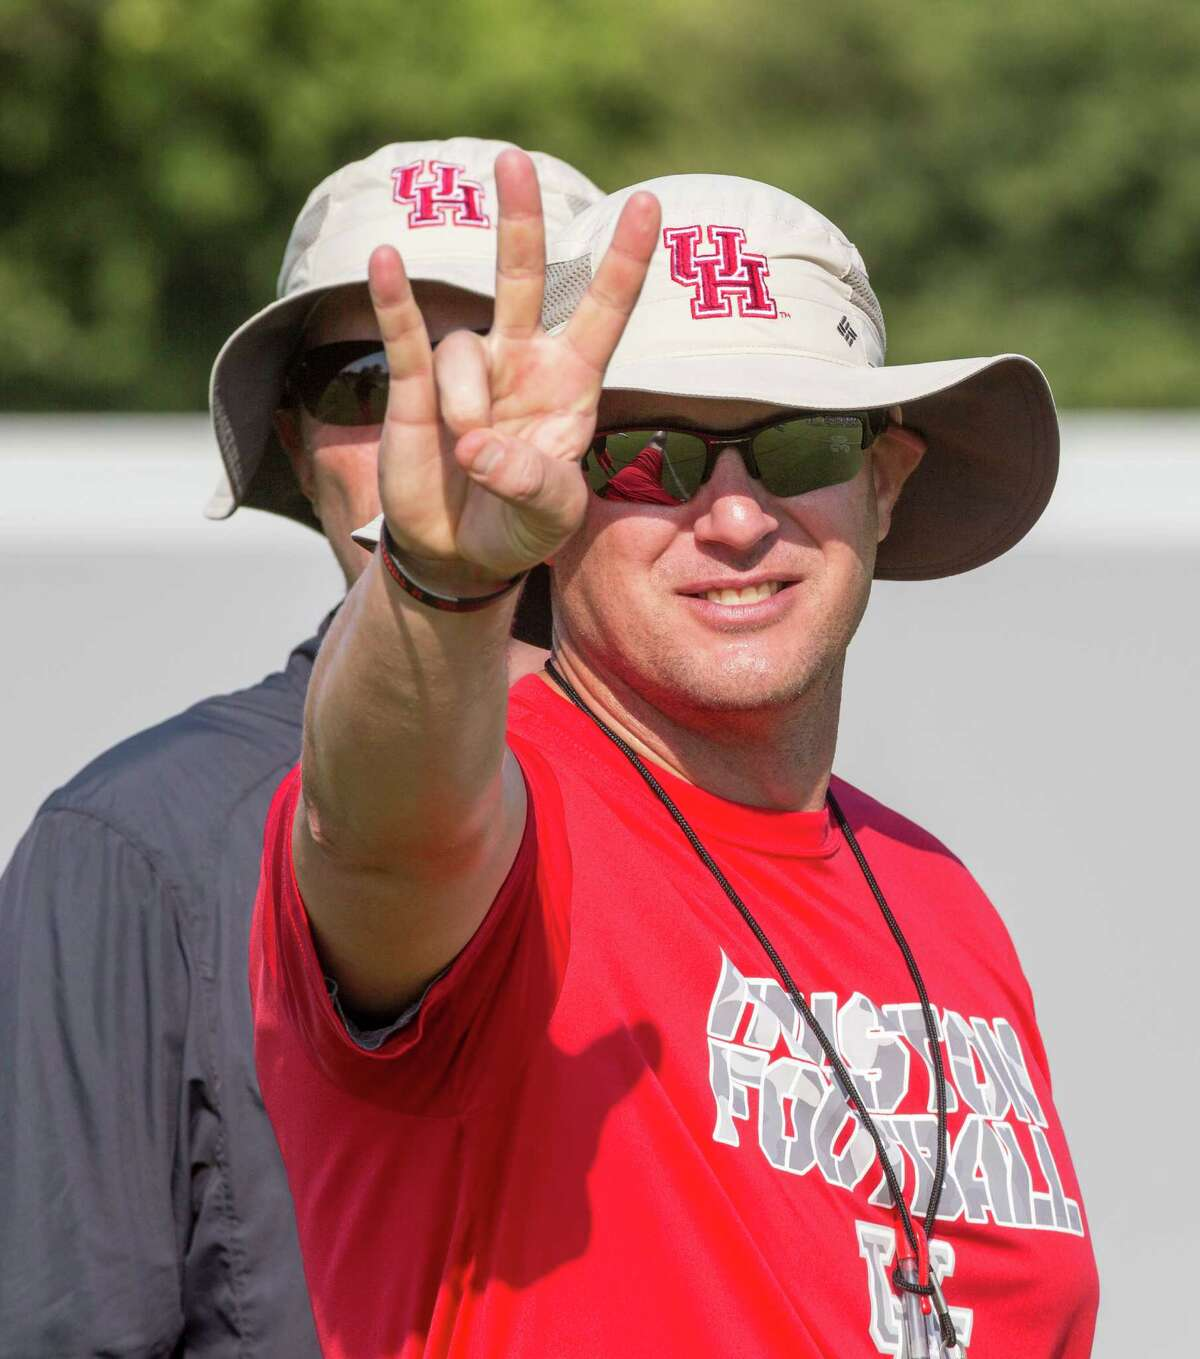 UH football practice. UH practice field behind Alumni Athletic Office, UH campus. ID: An upbeat Tom Herman, Head Coach, flashes the traditional UH hand gesture during practice. Tuesday August 11, 2015 (Craig H. Hartley/For the Chronicle)